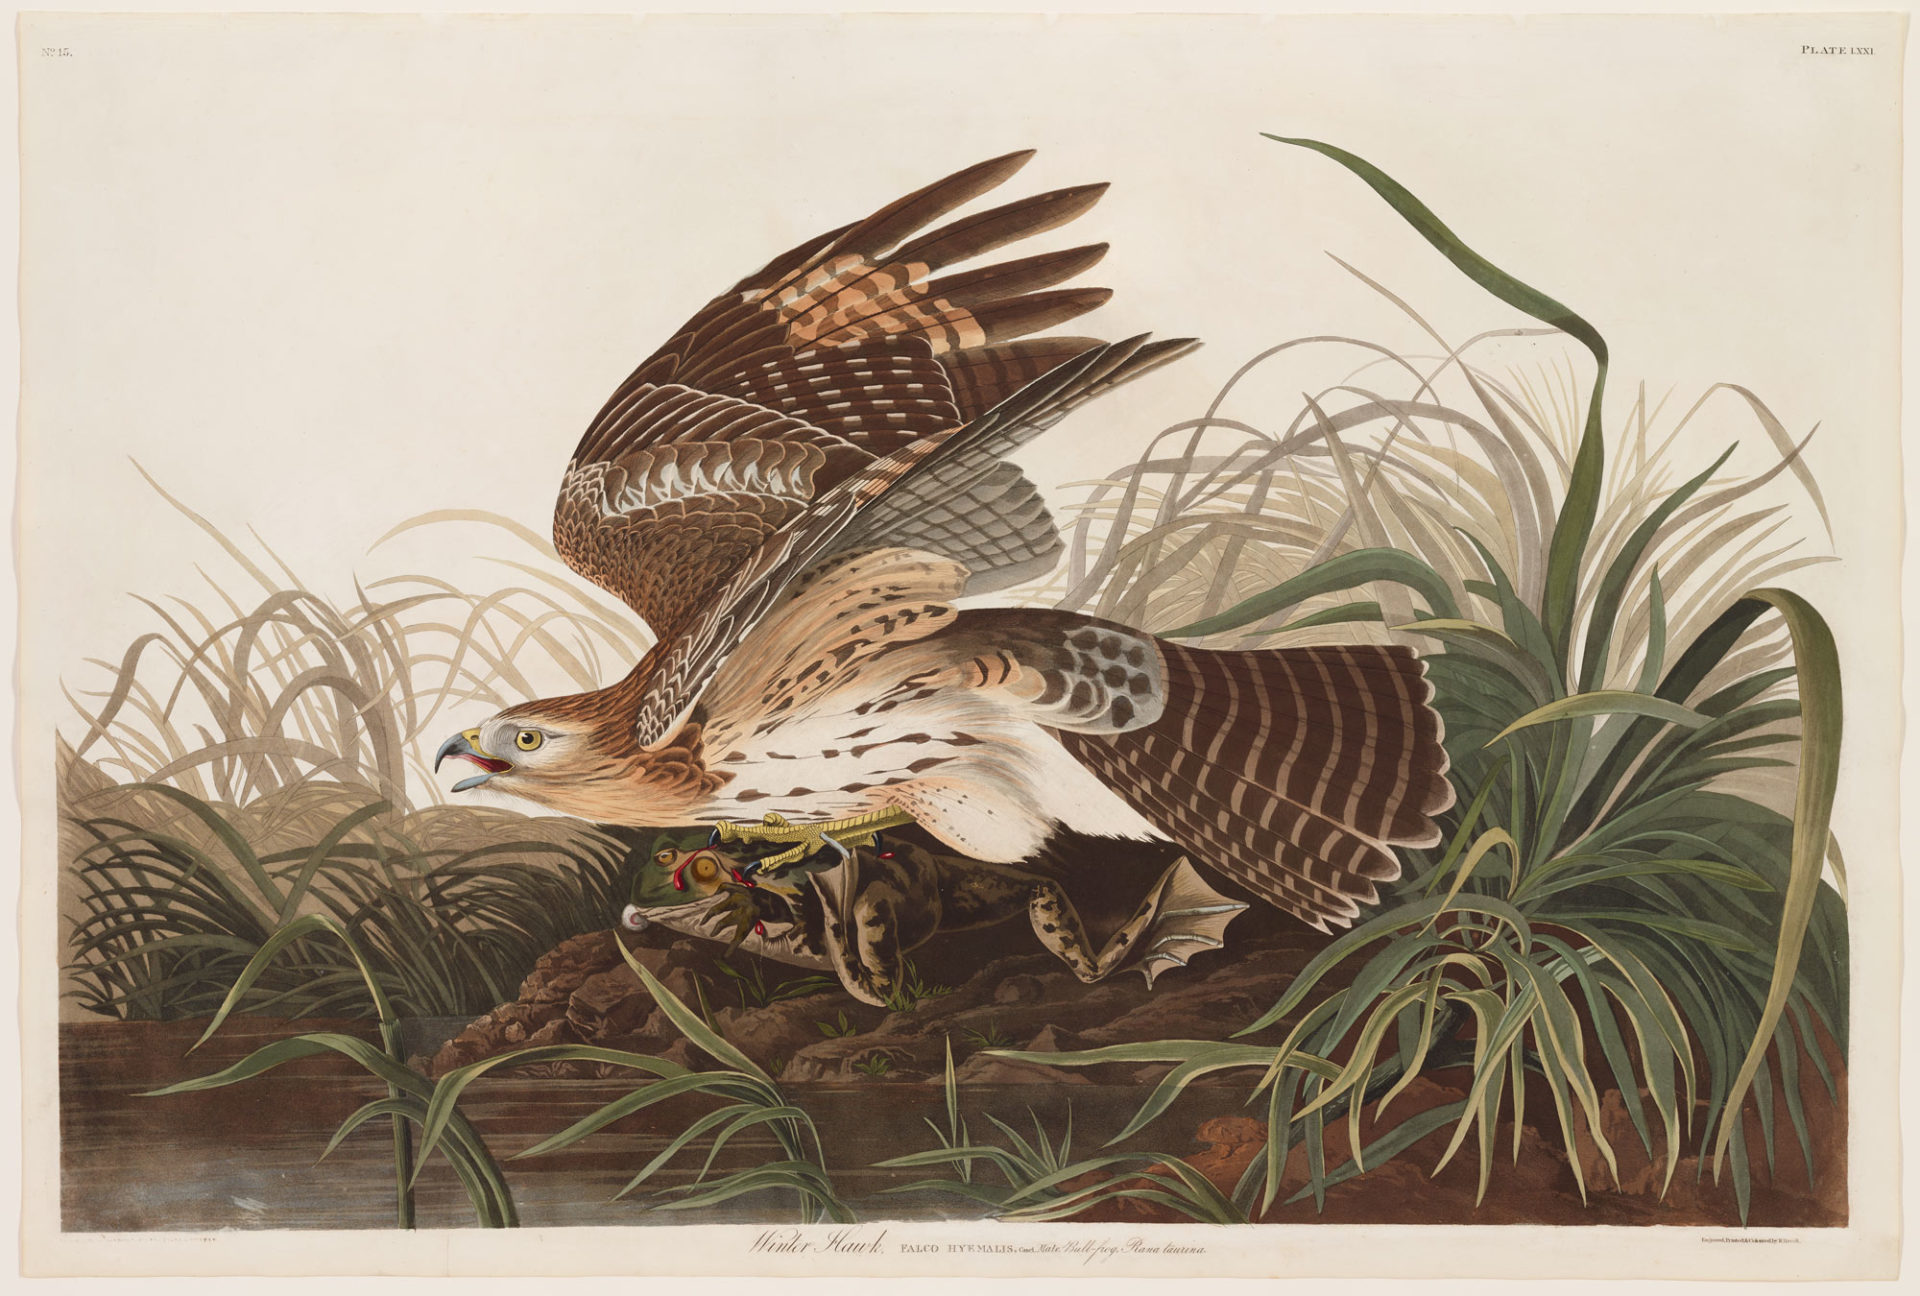 Red-Shouldered Hawk, Plate 71 Hand-colored engraving from The Birds of America, 1826-1838